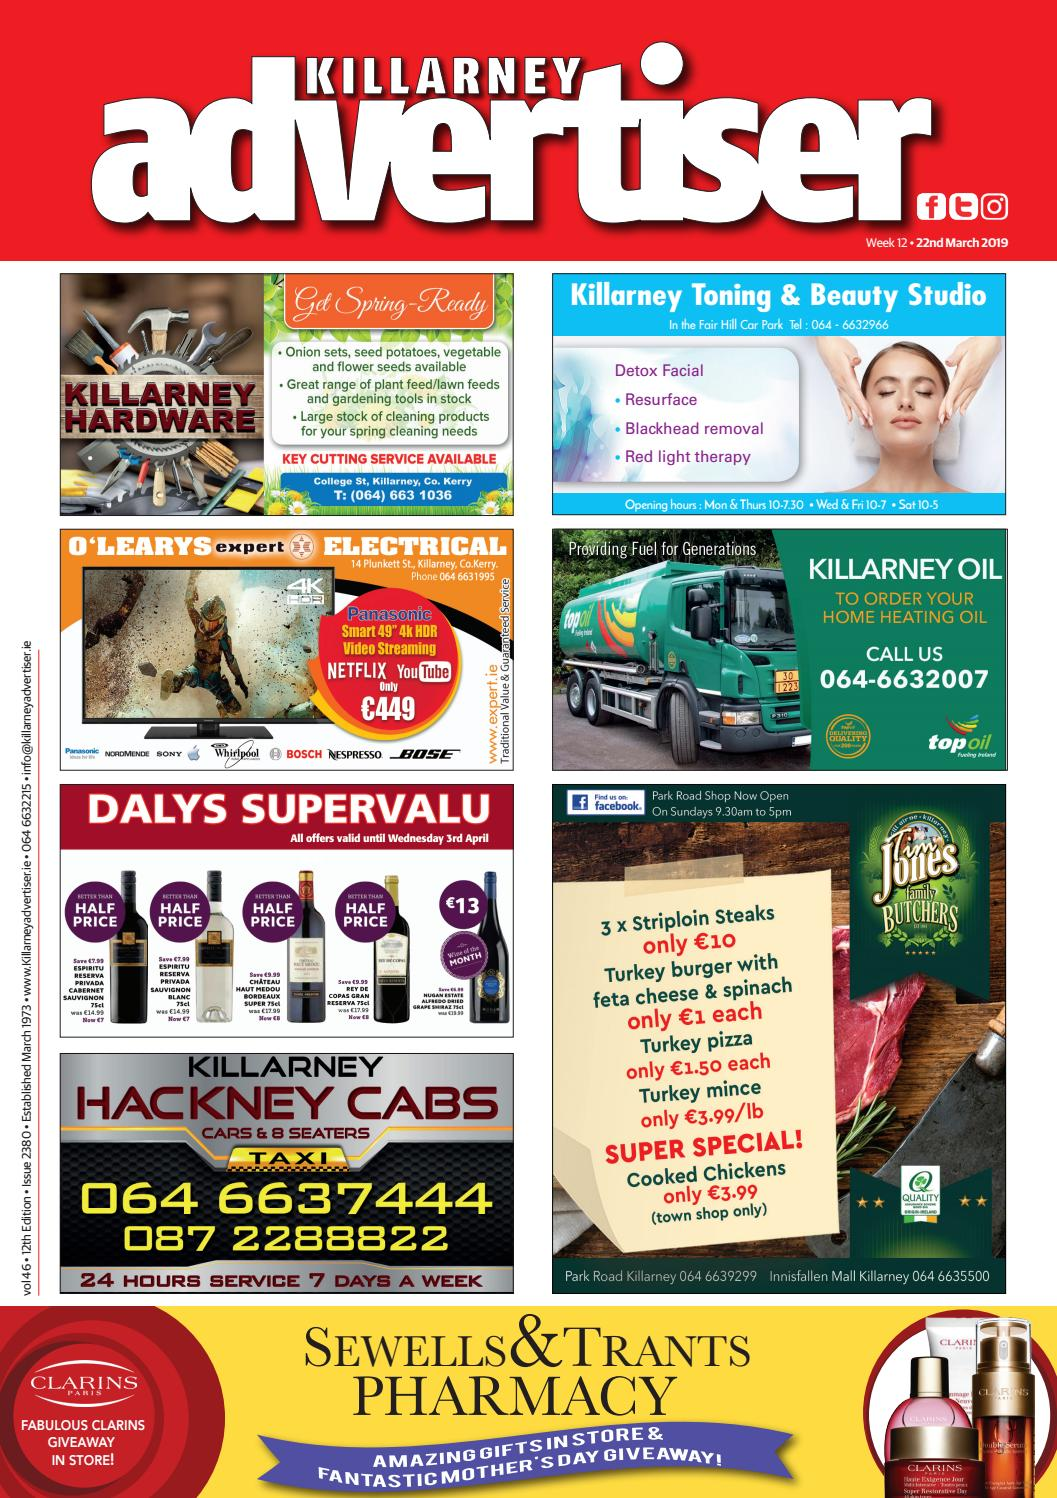 98060c51f7 Killarney Advertiser 22nd March 2019 by Killarney Advertiser - issuu